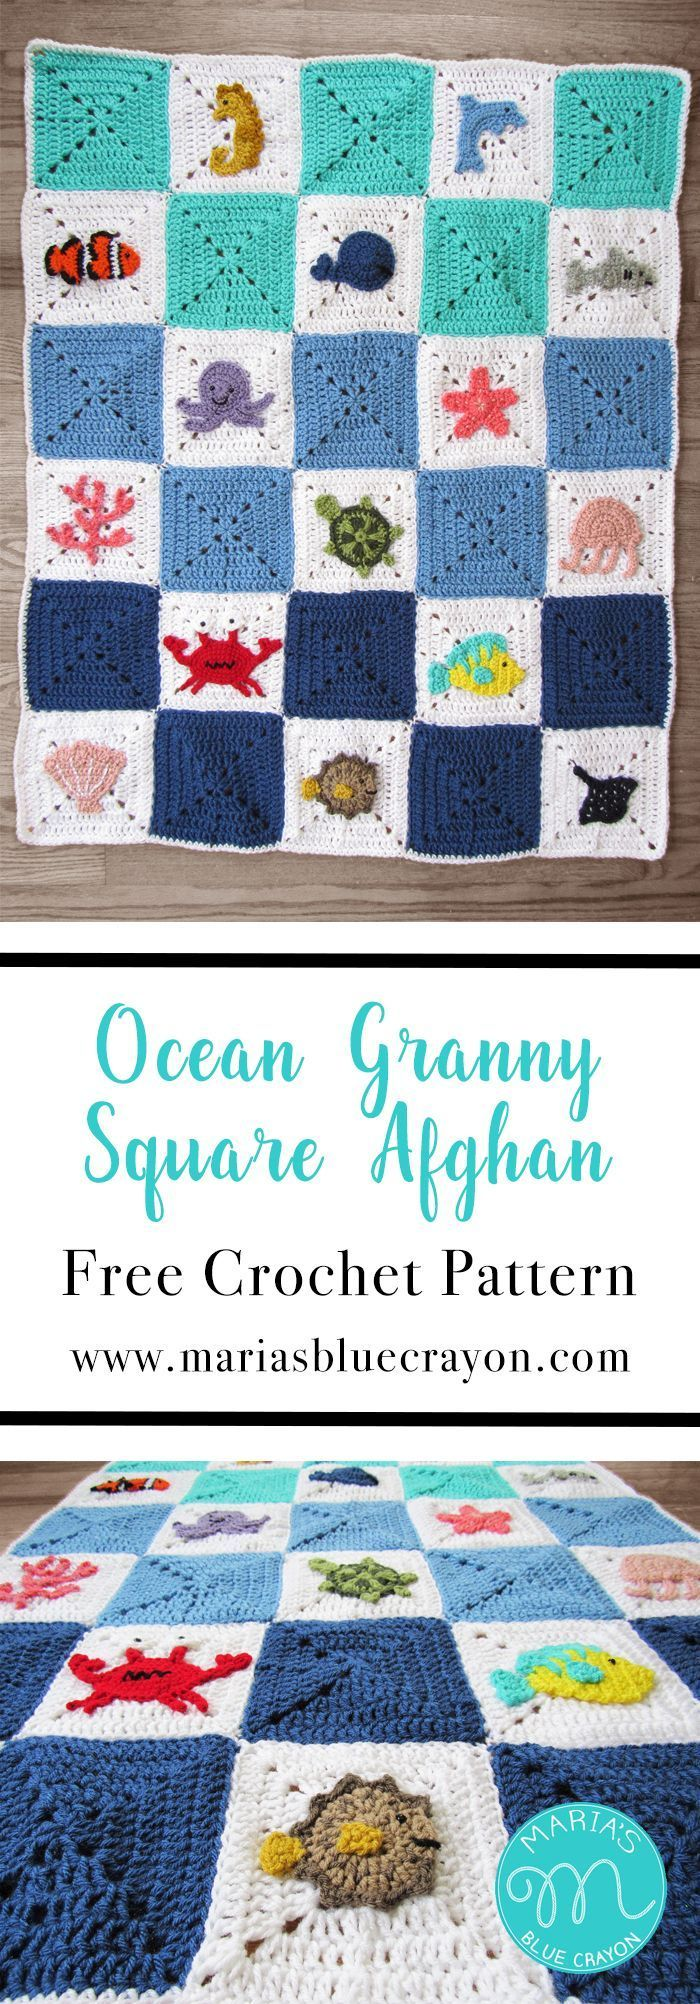 Ocean Themed Granny Square Afghan Series Crochet Pattern | Pinterest ...